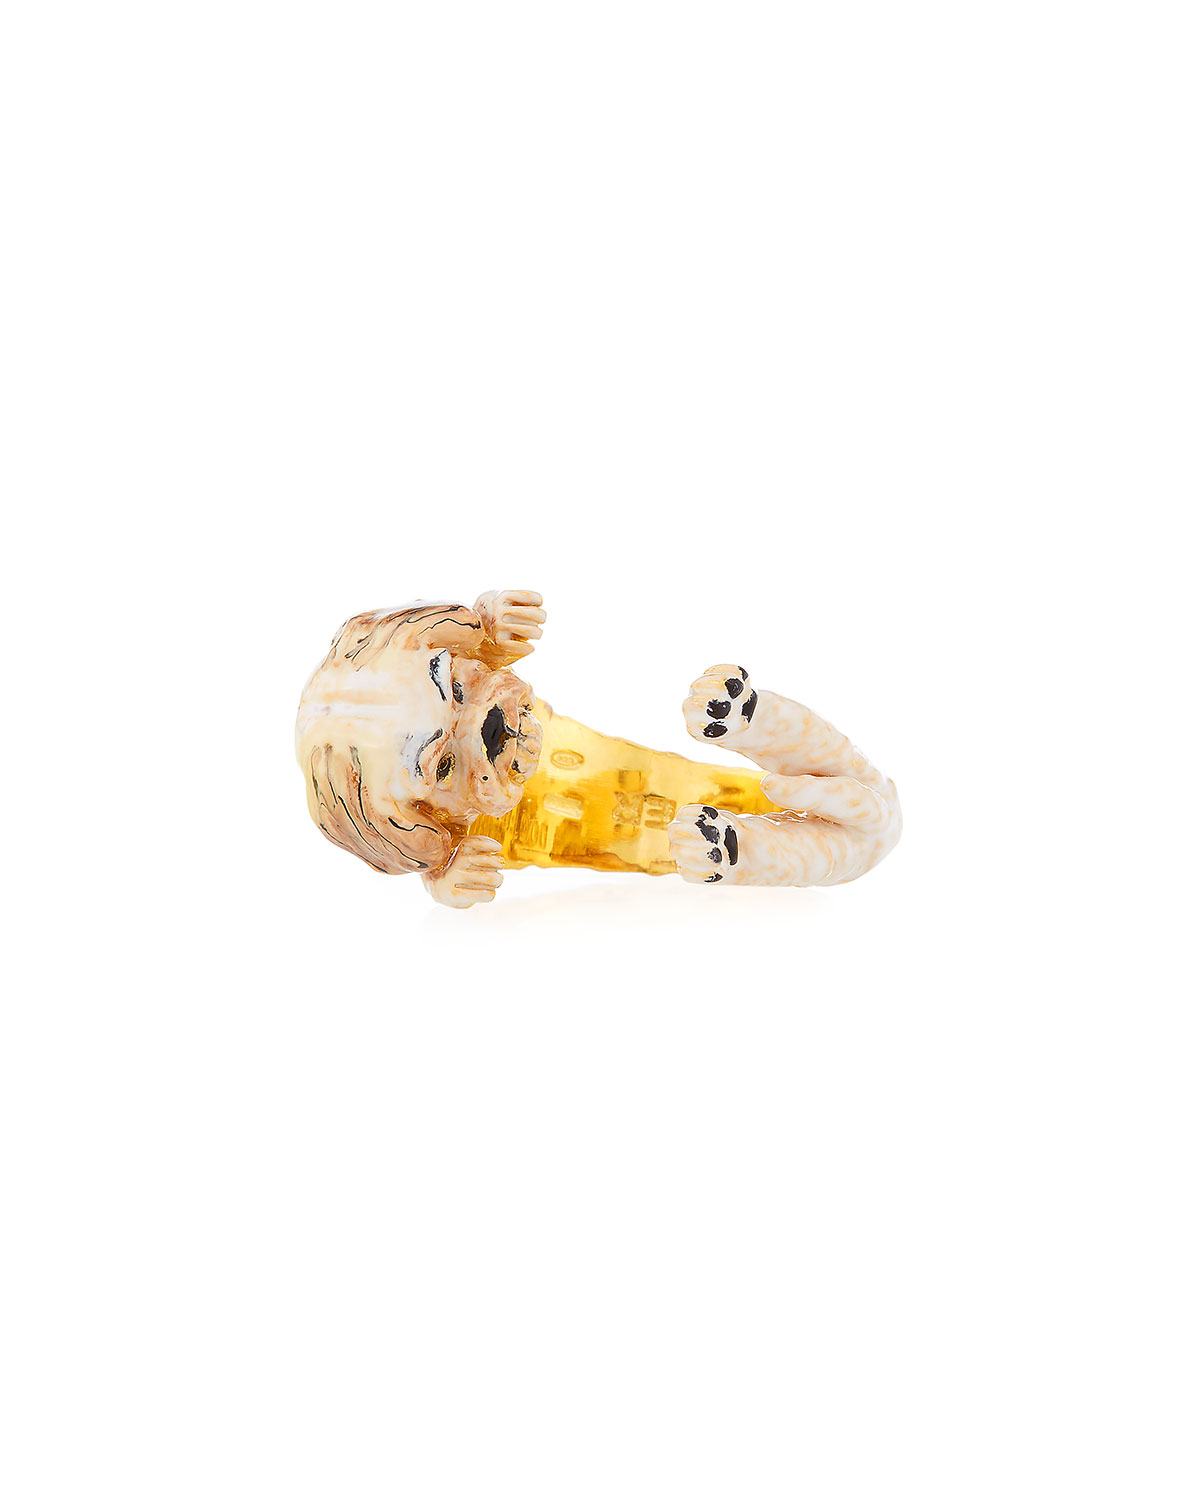 VISCONTI & DU REAU SHIH TZU PLATED ENAMEL DOG HUG RING, SIZE 8